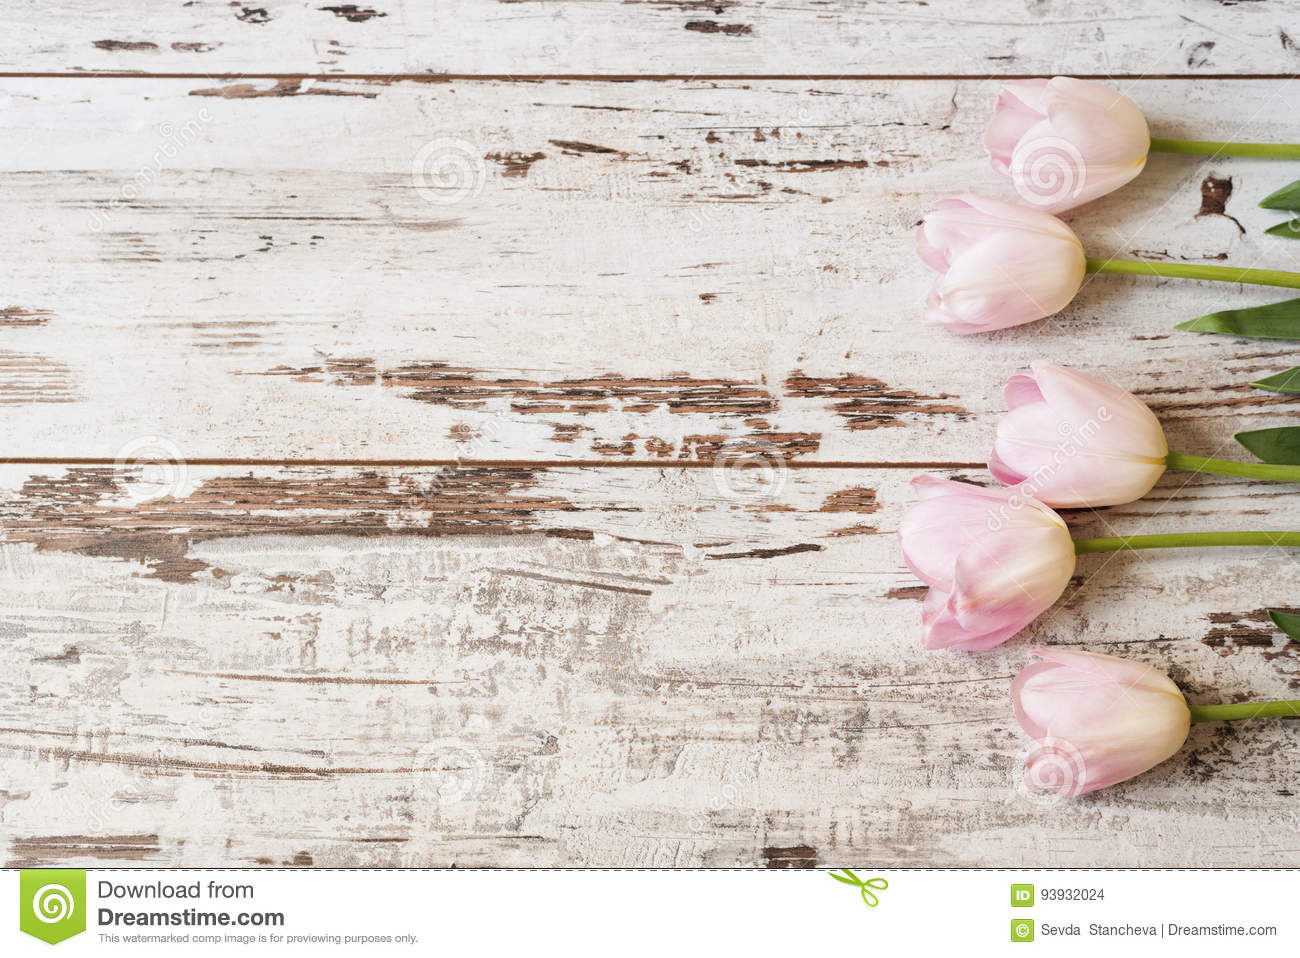 Stunning Pink Tulips On White Light Rustic Wooden Background Copy